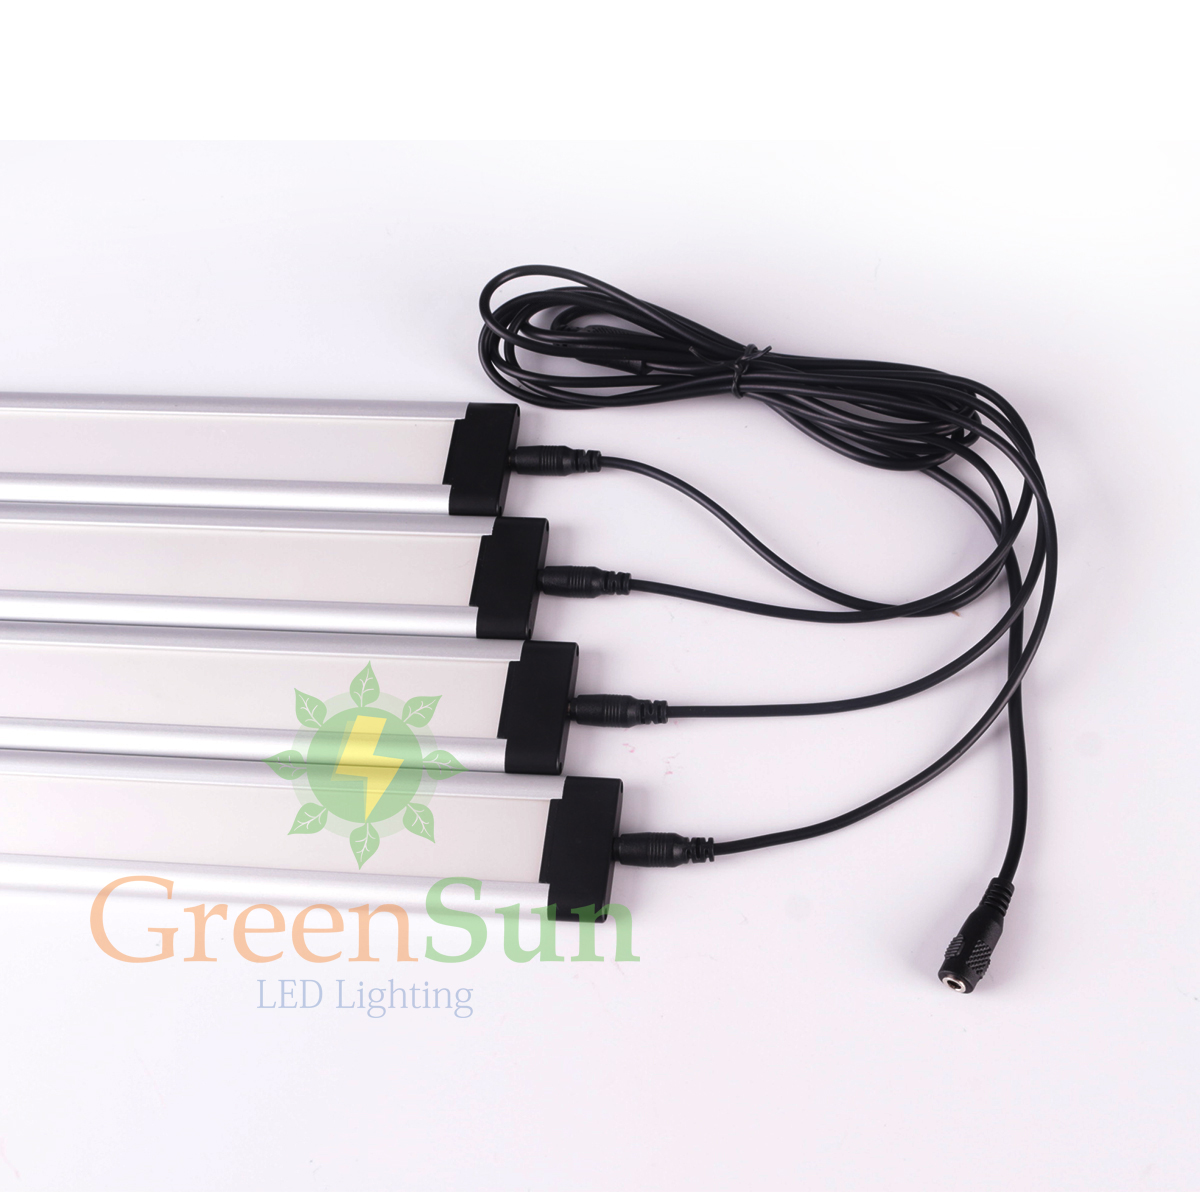 Led Parts 12v 1 Connect 4 Power Cords Extension Cords Connector 24v ...